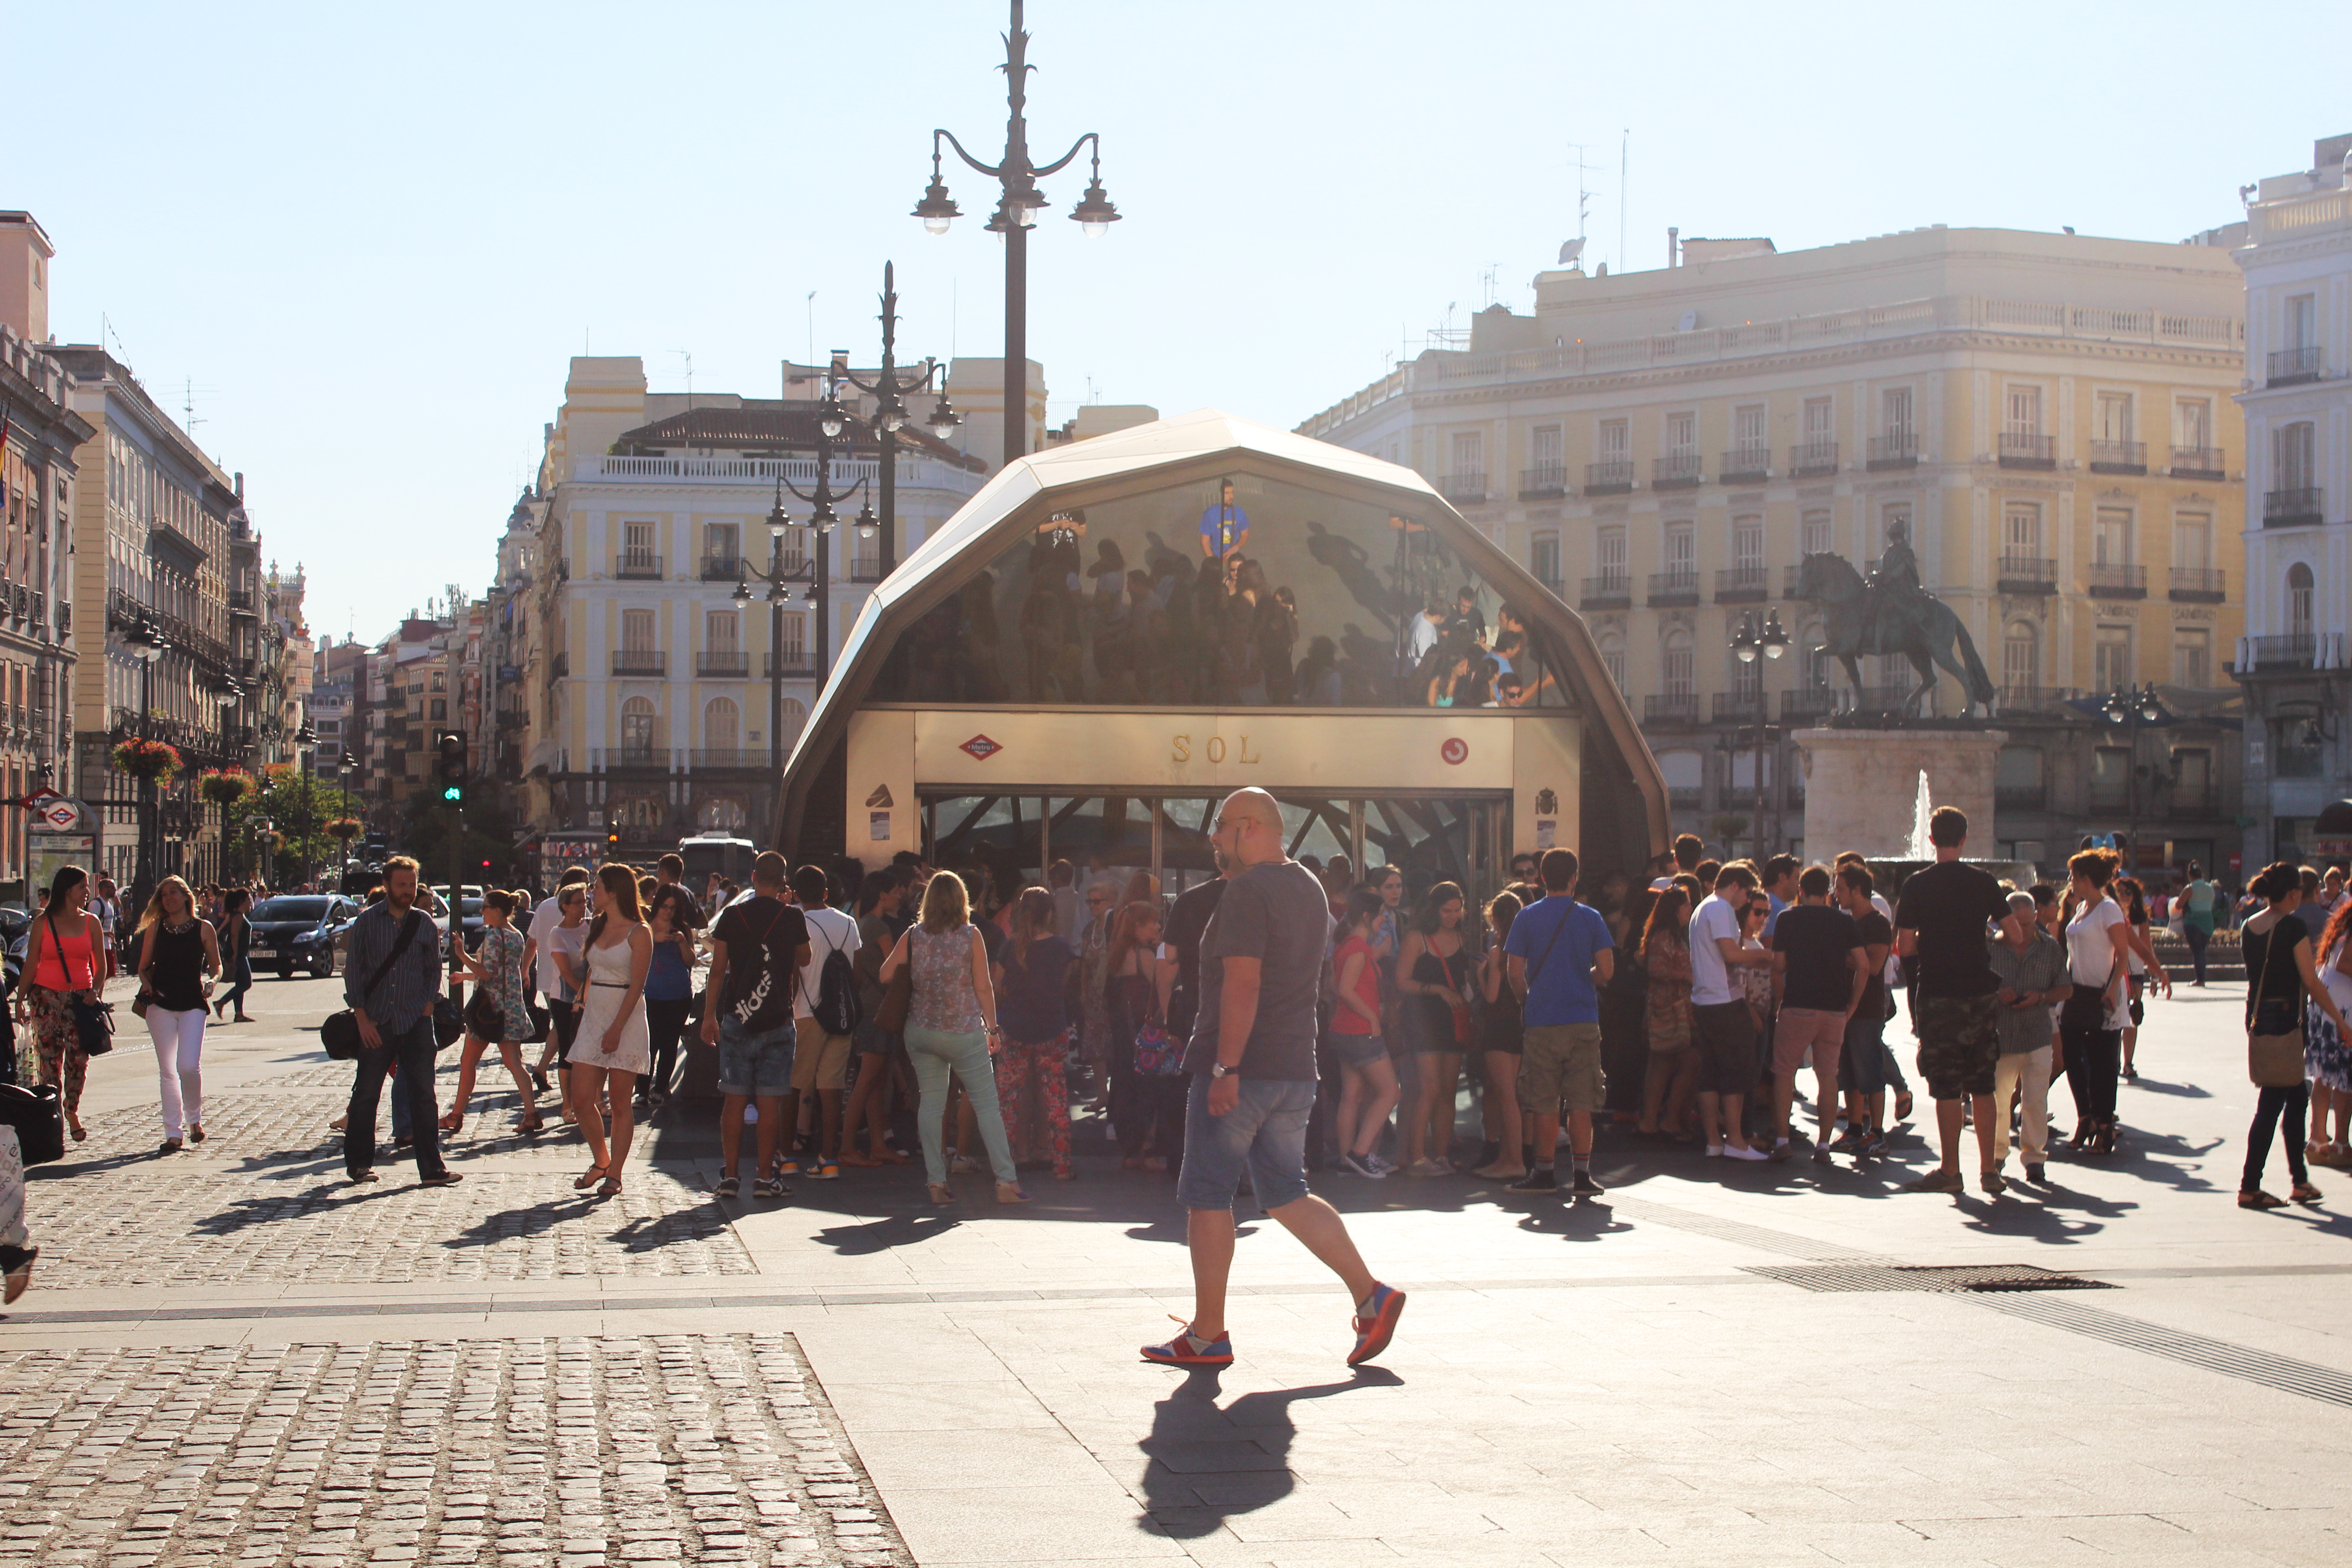 4 things to see in puerta del sol in madrid the for Madrid puerta sol